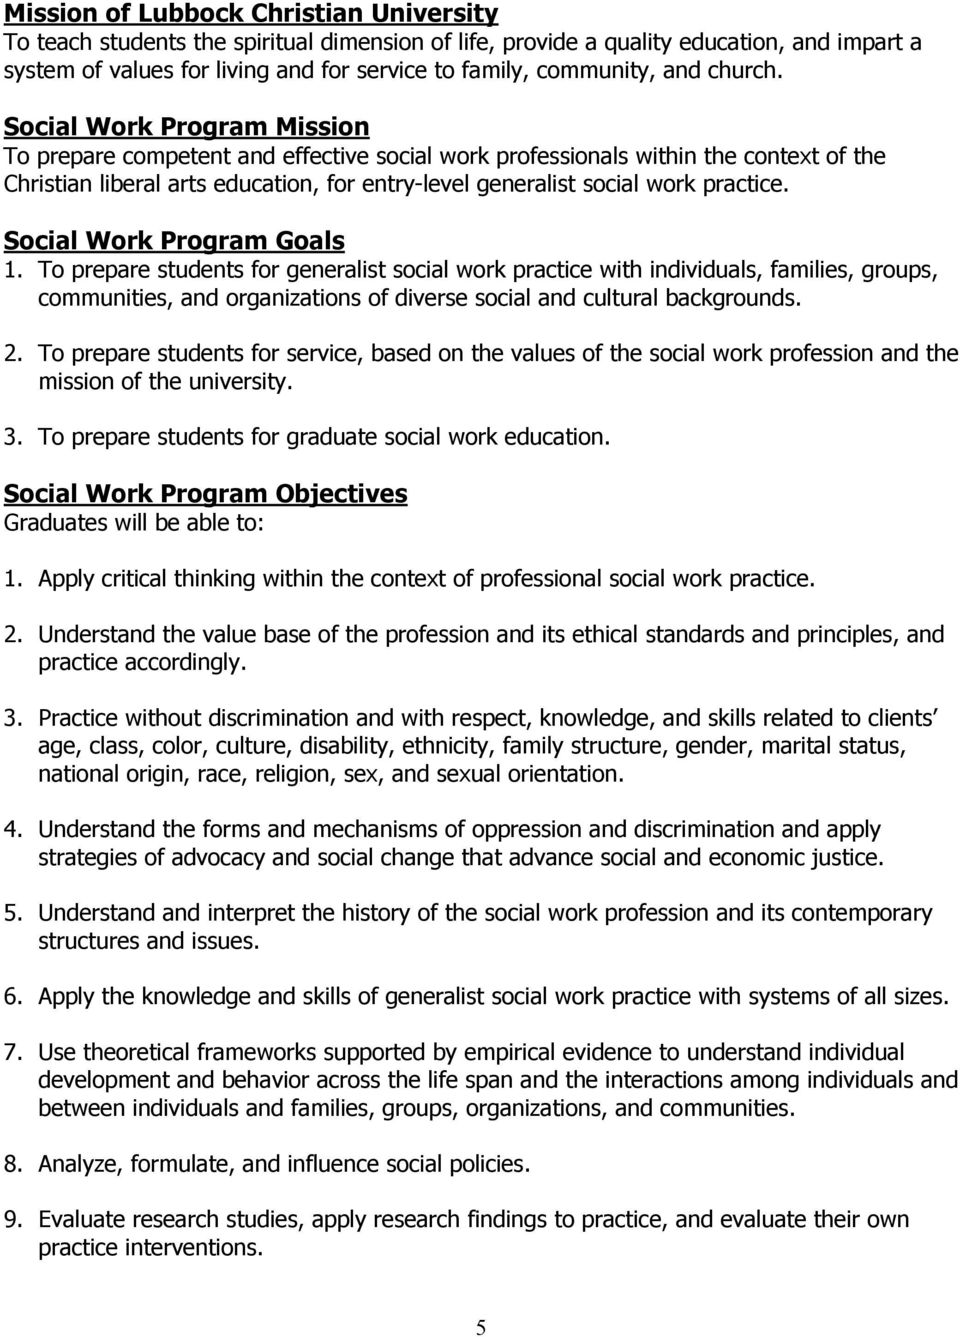 Social Work Program Mission To prepare competent and effective social work professionals within the context of the Christian liberal arts education, for entry-level generalist social work practice.